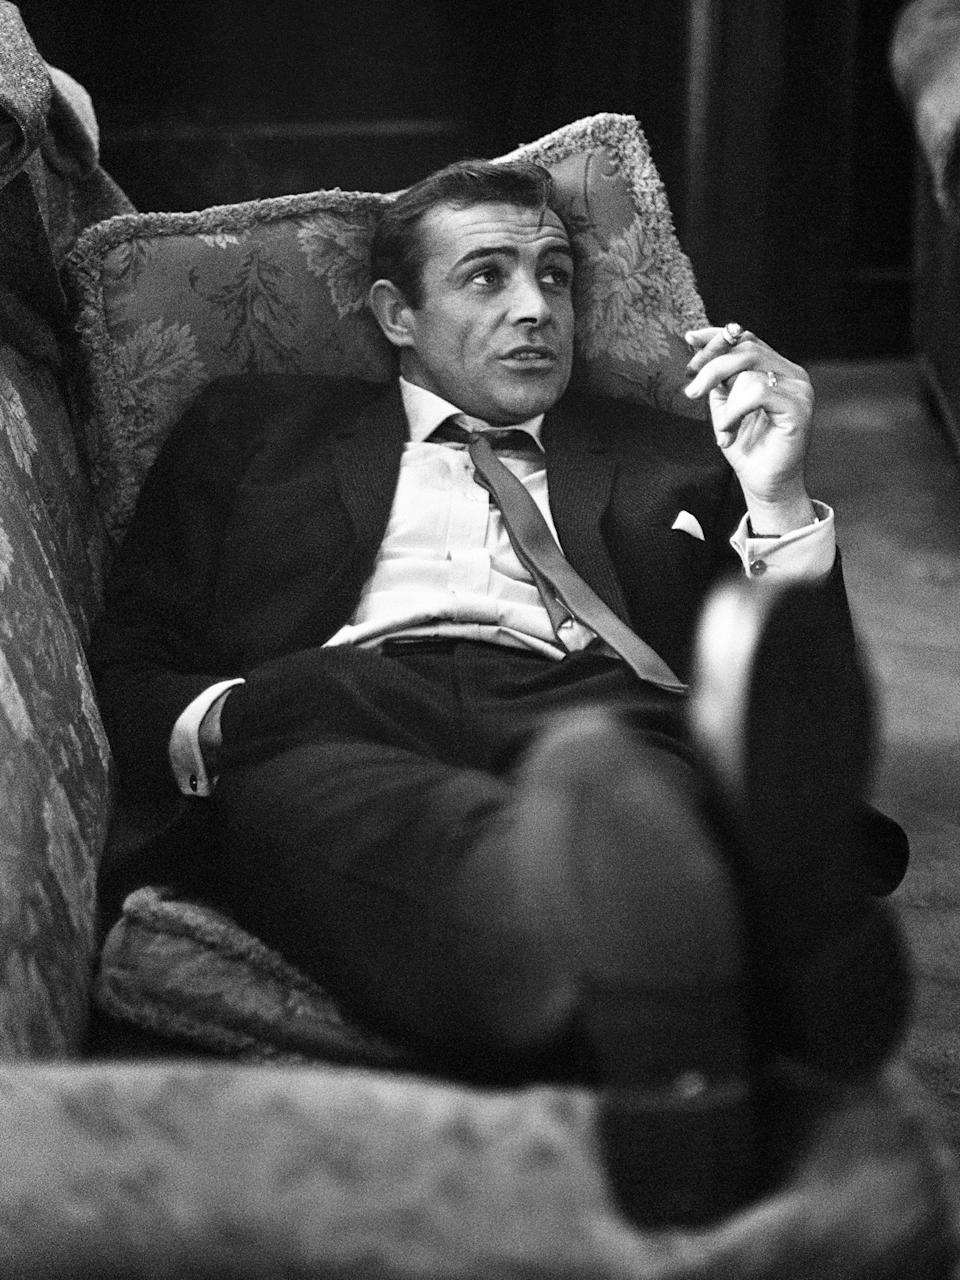 <p>Connery lounges on a sofa with a cigarette during the filming of 'Woman of Straw' in 1963</p>Getty